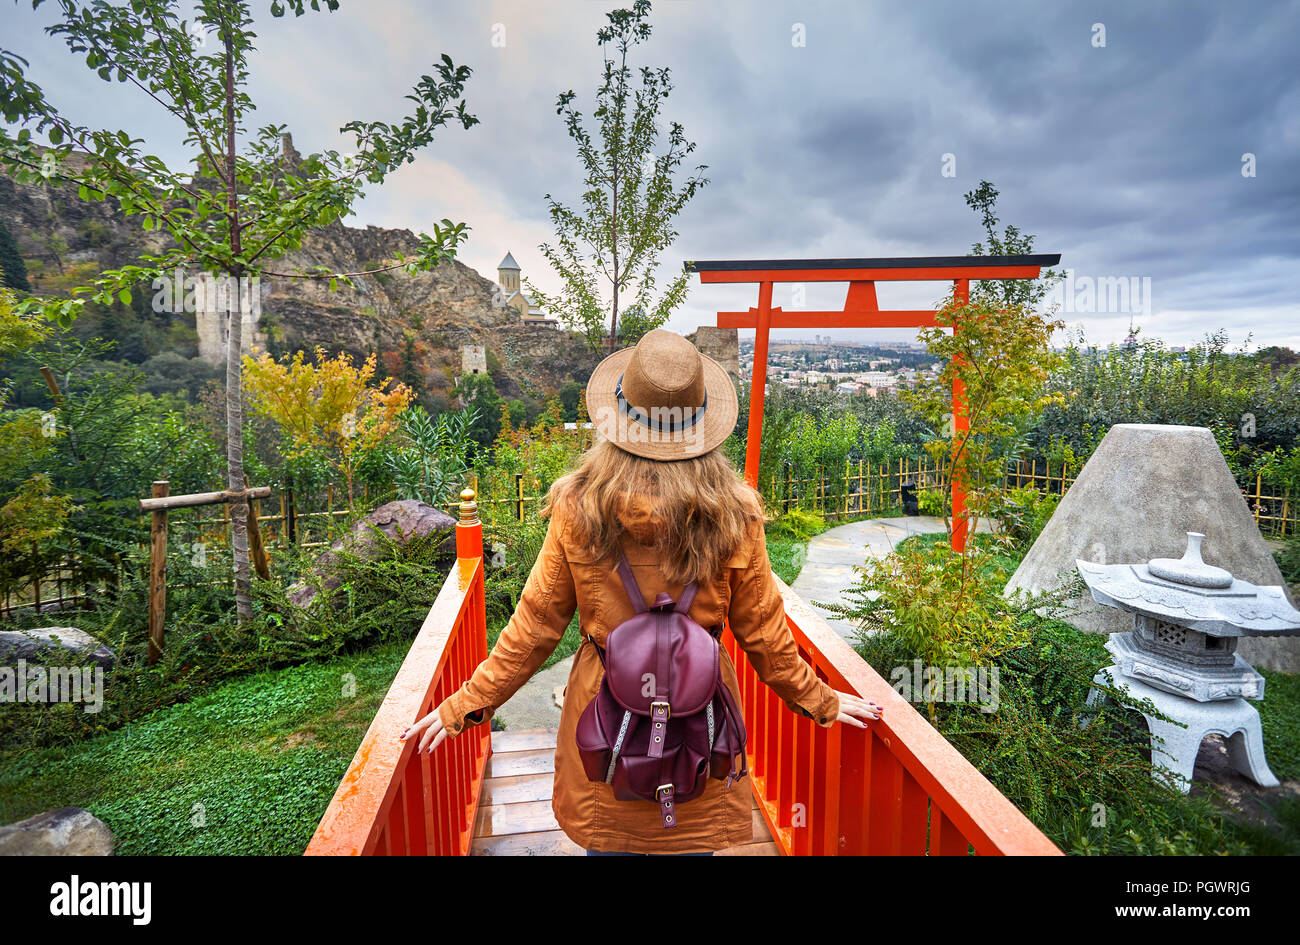 Woman in brown hat in Japanese garden and old castle Narikala at overcast cloudy sky in botanical garden of Tbilisi, Georgia - Stock Image